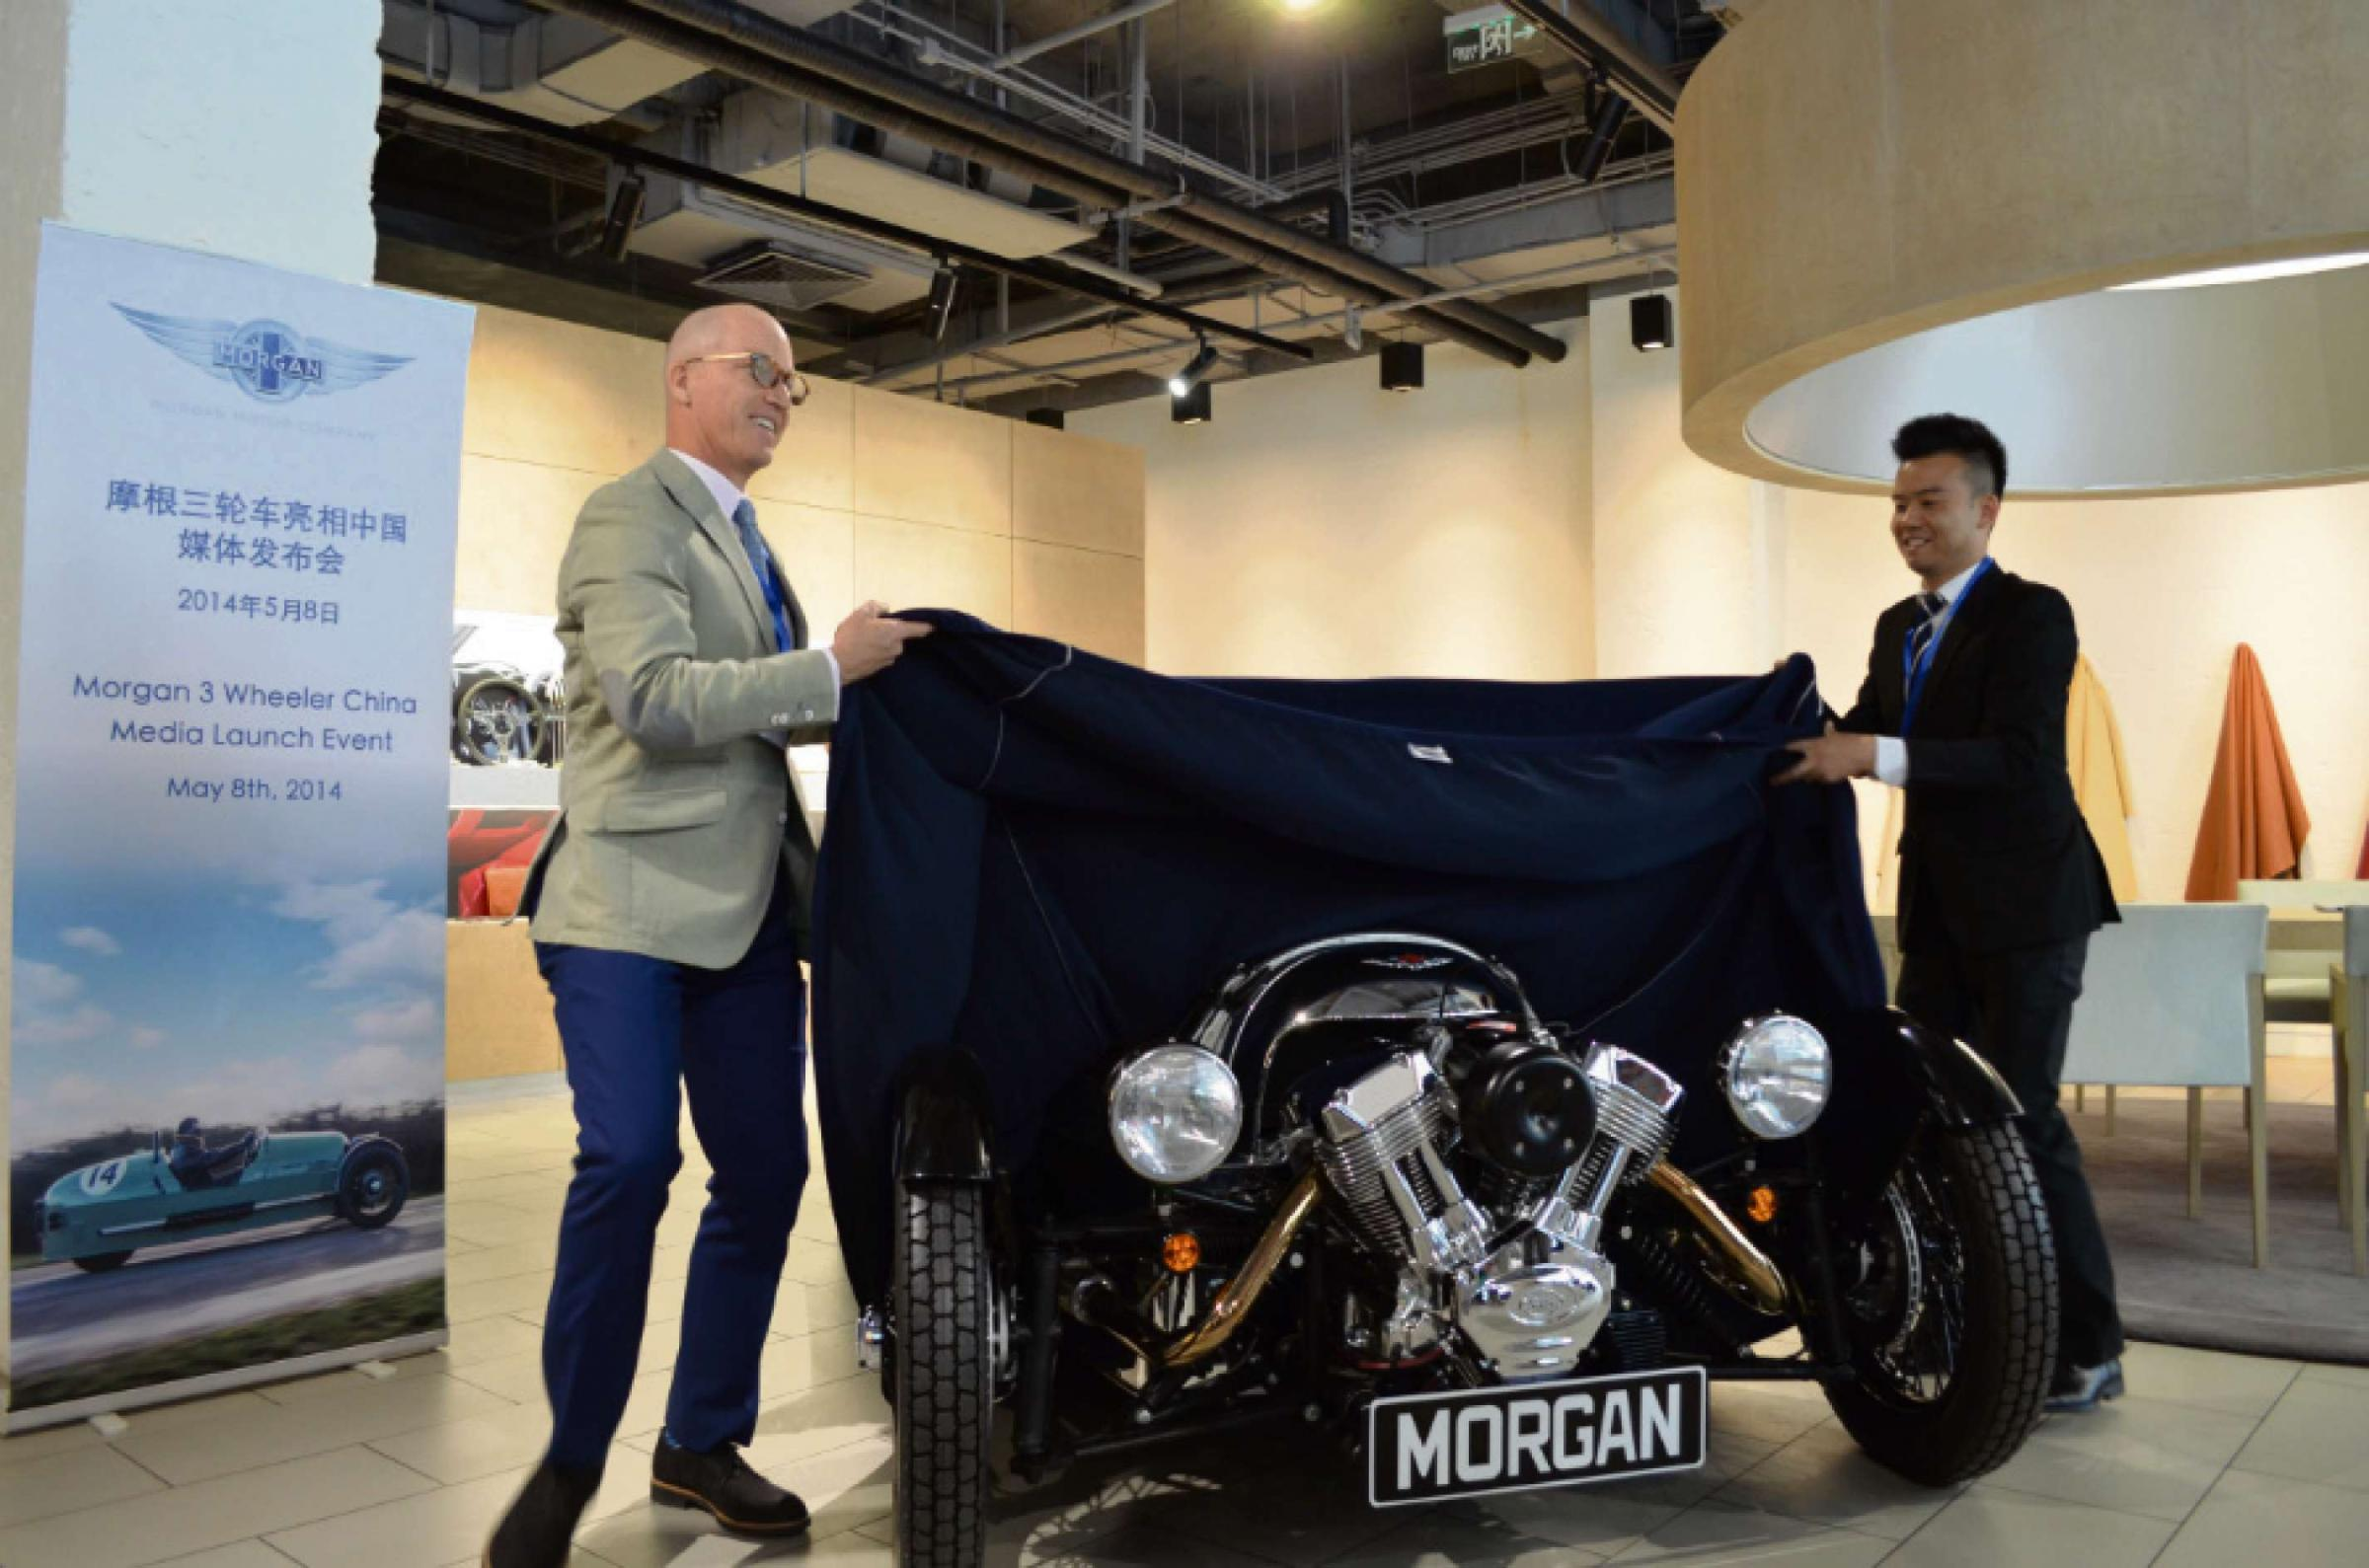 Jim James (left), managing director of Morgan Cars China, helping to unveil the first Morgan 3 Wheeler in China with Austin Li, sales and marketing manager of Morgan Cars China.